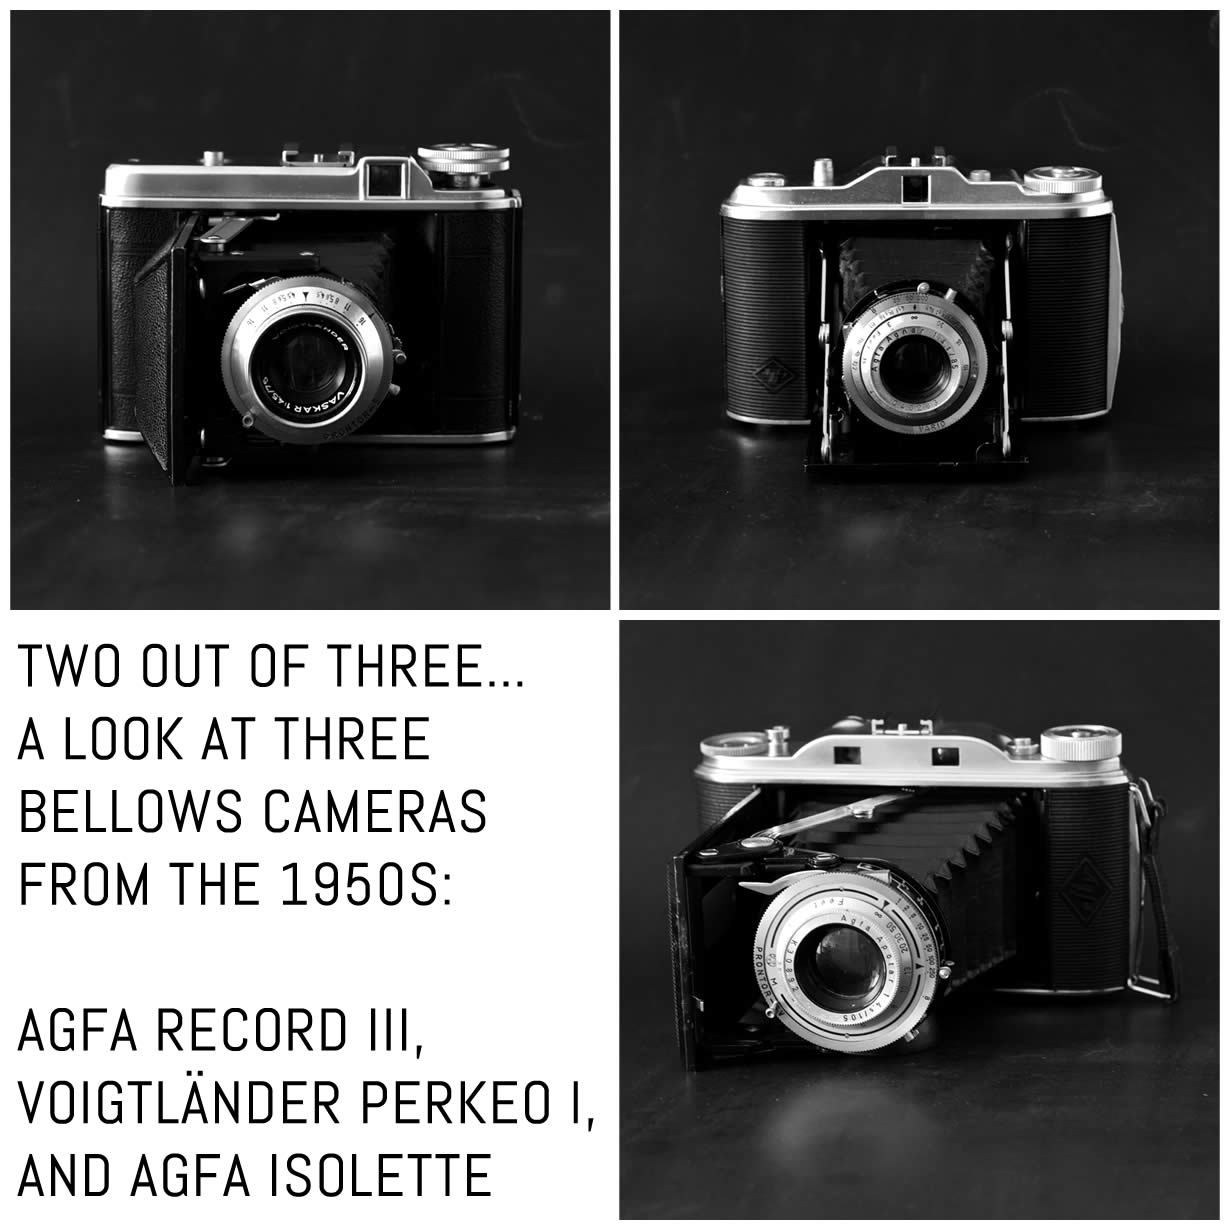 Cover - Two out of three... A look at three bellows cameras from the 1950s: Agfa Record III, Voigtländer Perkeo I, and Agfa Isolette